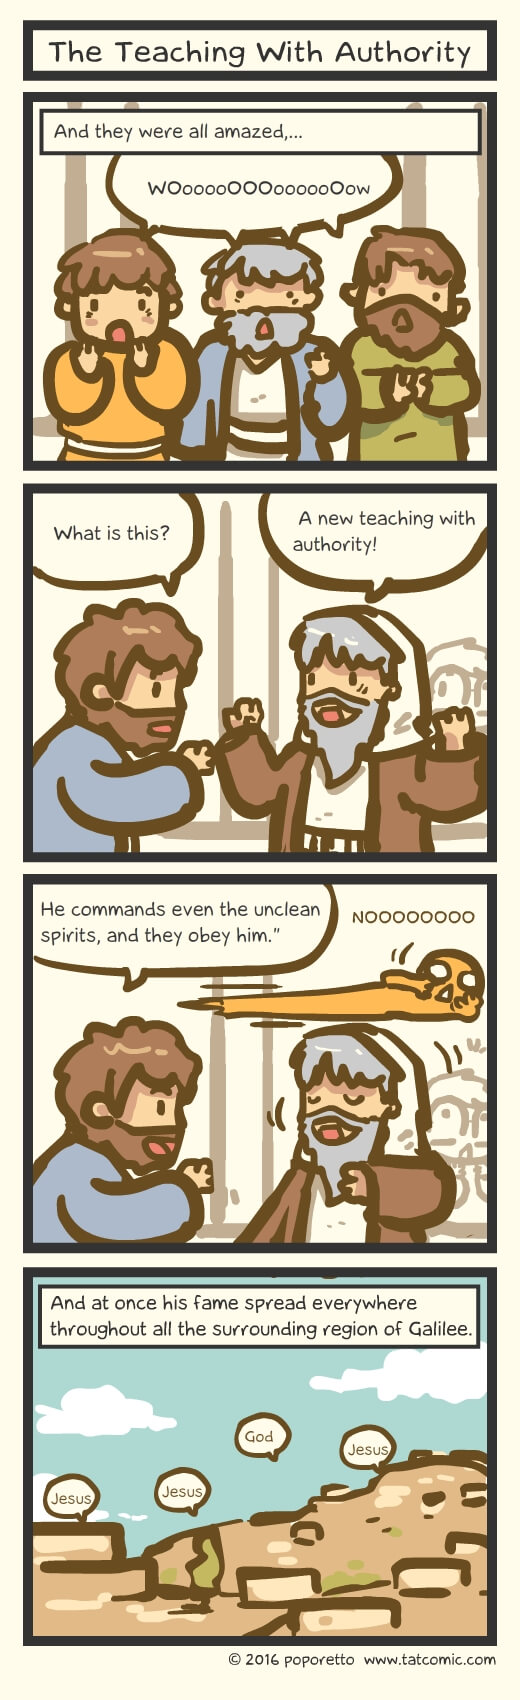 Christian Comic Strip the Gospel of Mark Book of Mark jesus teaching with authority